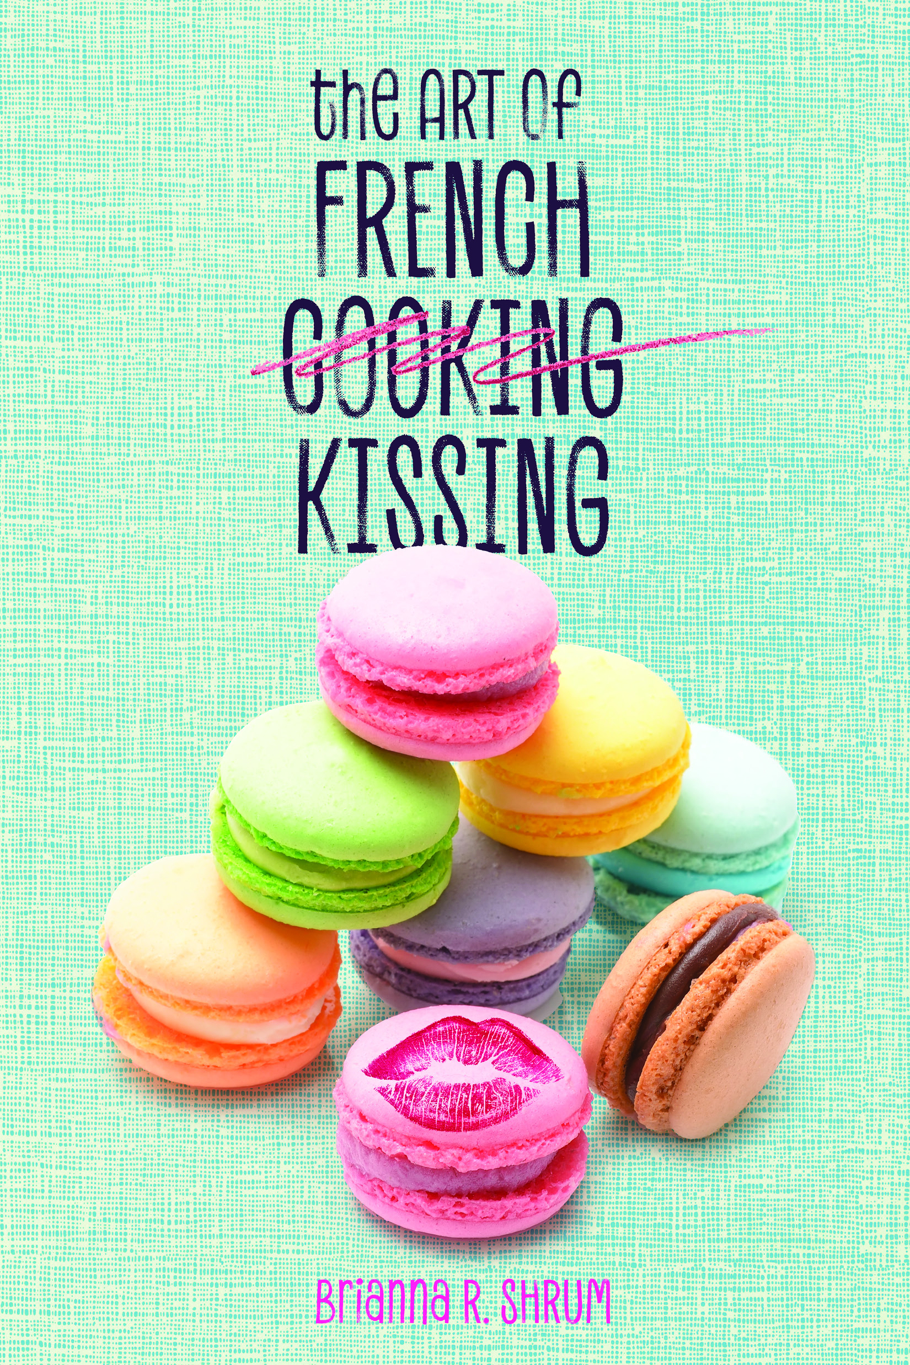 The art of french kissing by brianna r shrum, the art of french kissing book review, must reads, 2019 books, what to read in 2019, great books to read in 2019, young adult novels, must read young adult books, chic lit, summer books to read, book review, books to read, book review, Must add to your 2017 reading list! What 2017 books do you need to read ASAP? Get your TBR ready because here are my Best Books of 2018, Must add to your 2018 reading list!